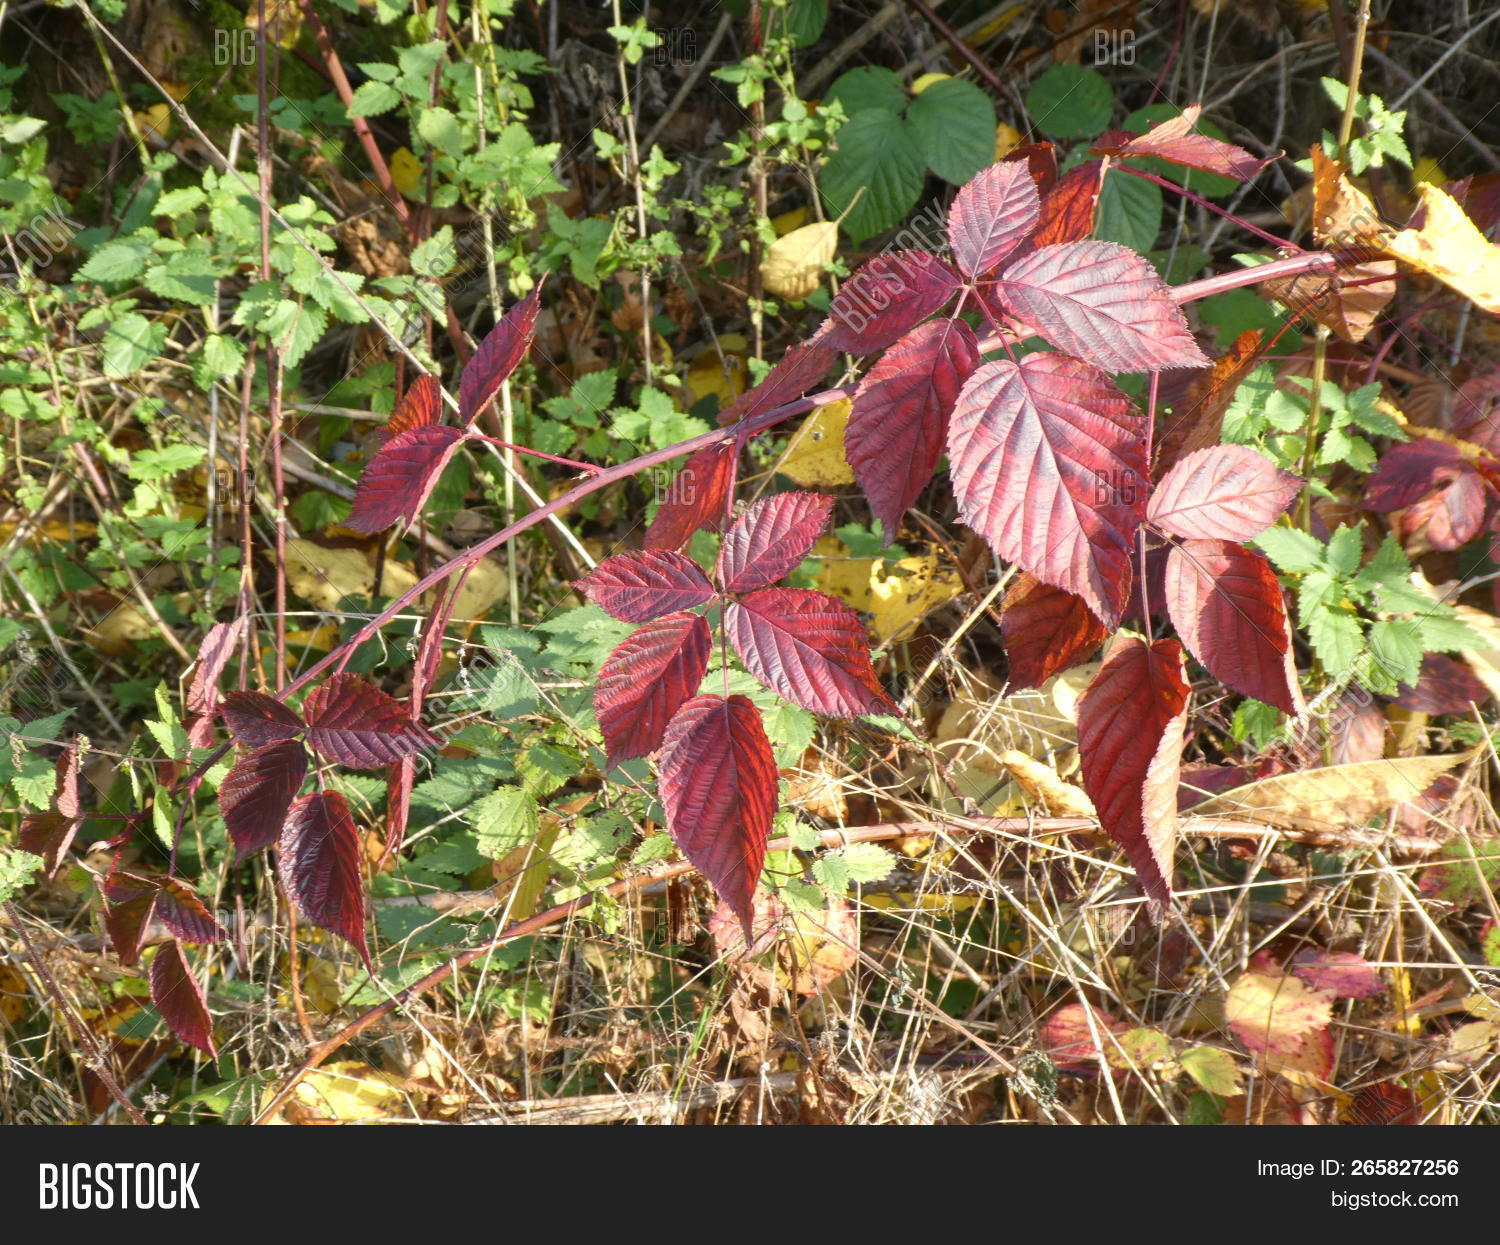 red leaves of a brambleberry bush in the forest in autumn